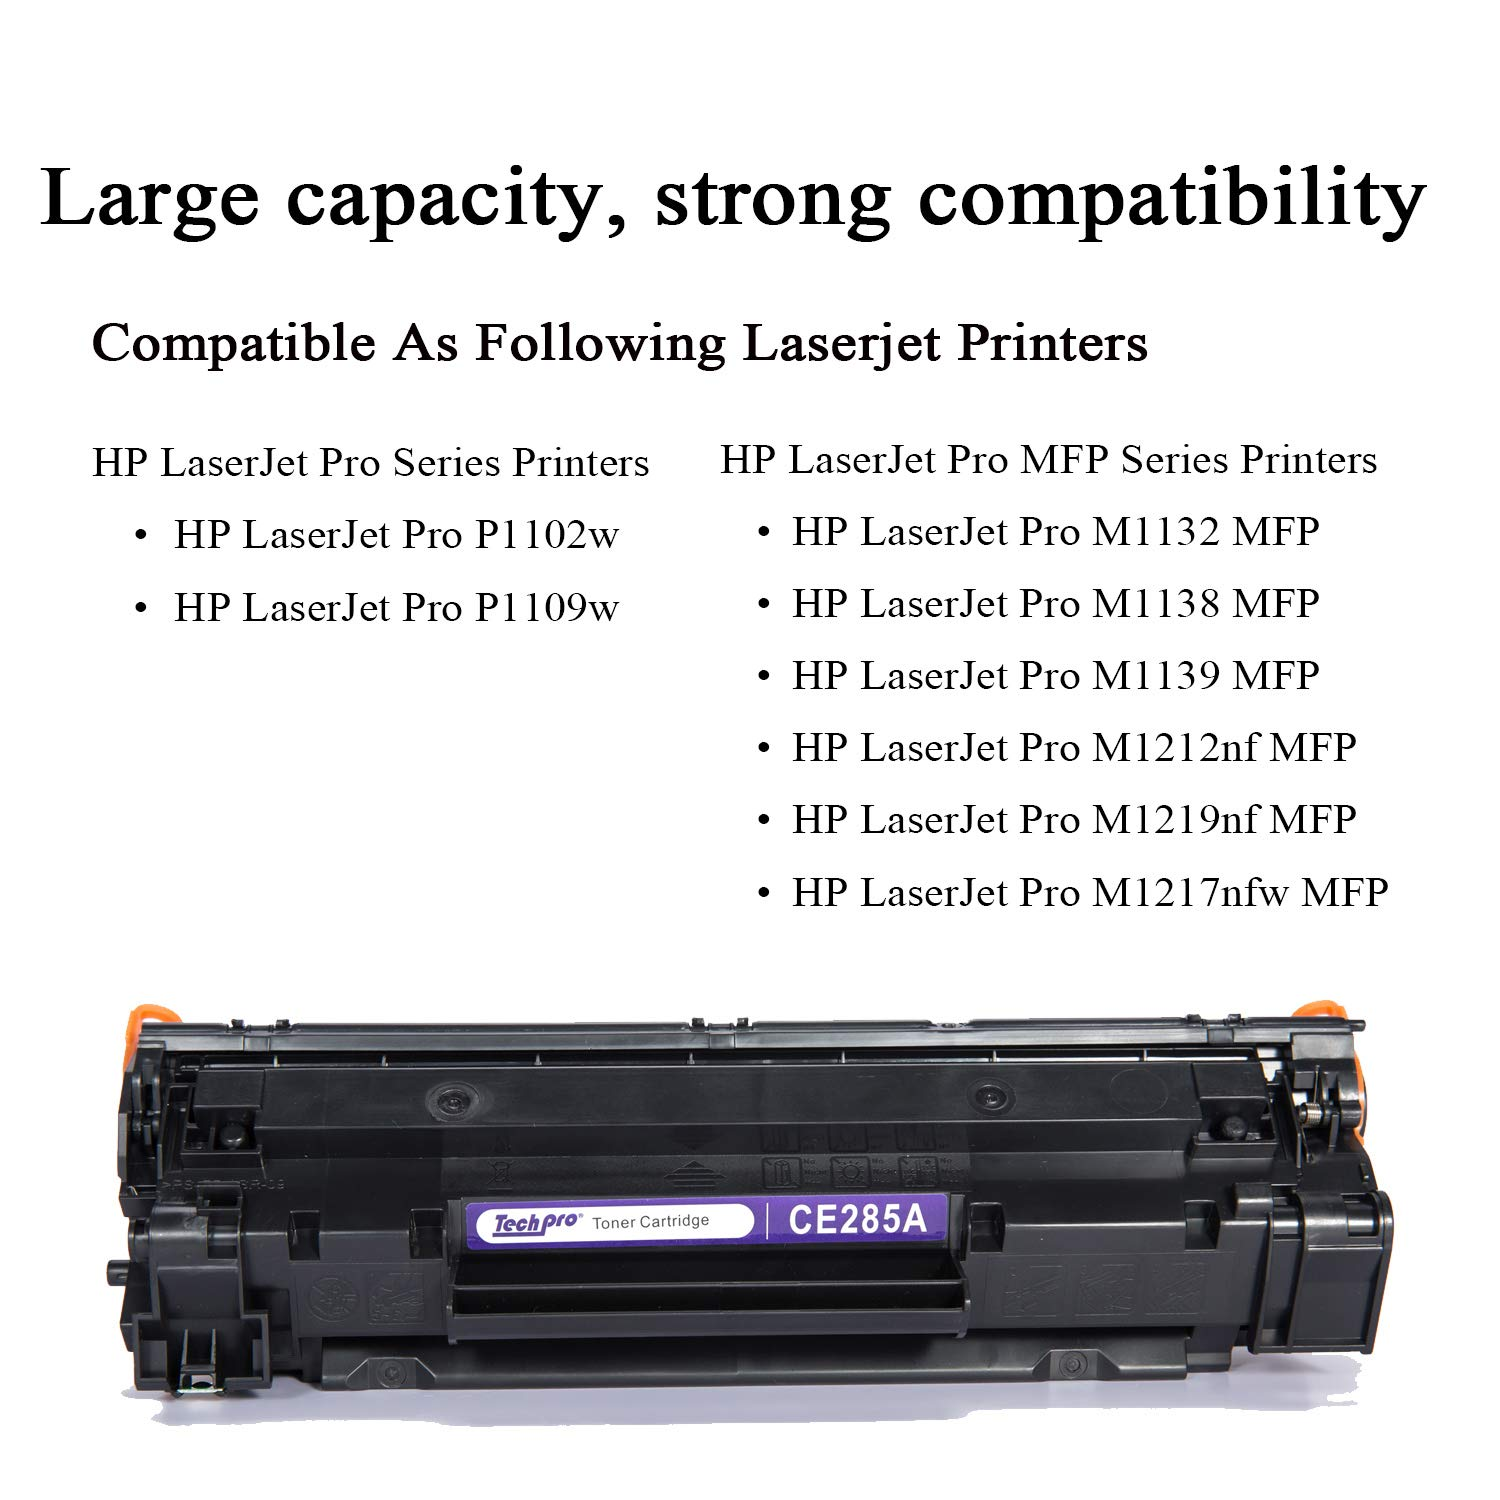 Toner Printer Cartridge Replacement High Yield Black Laser For Hp Laserjet P1102 M1132 Compatible Pro M1212nf Ce285a 85a 1500 Pages